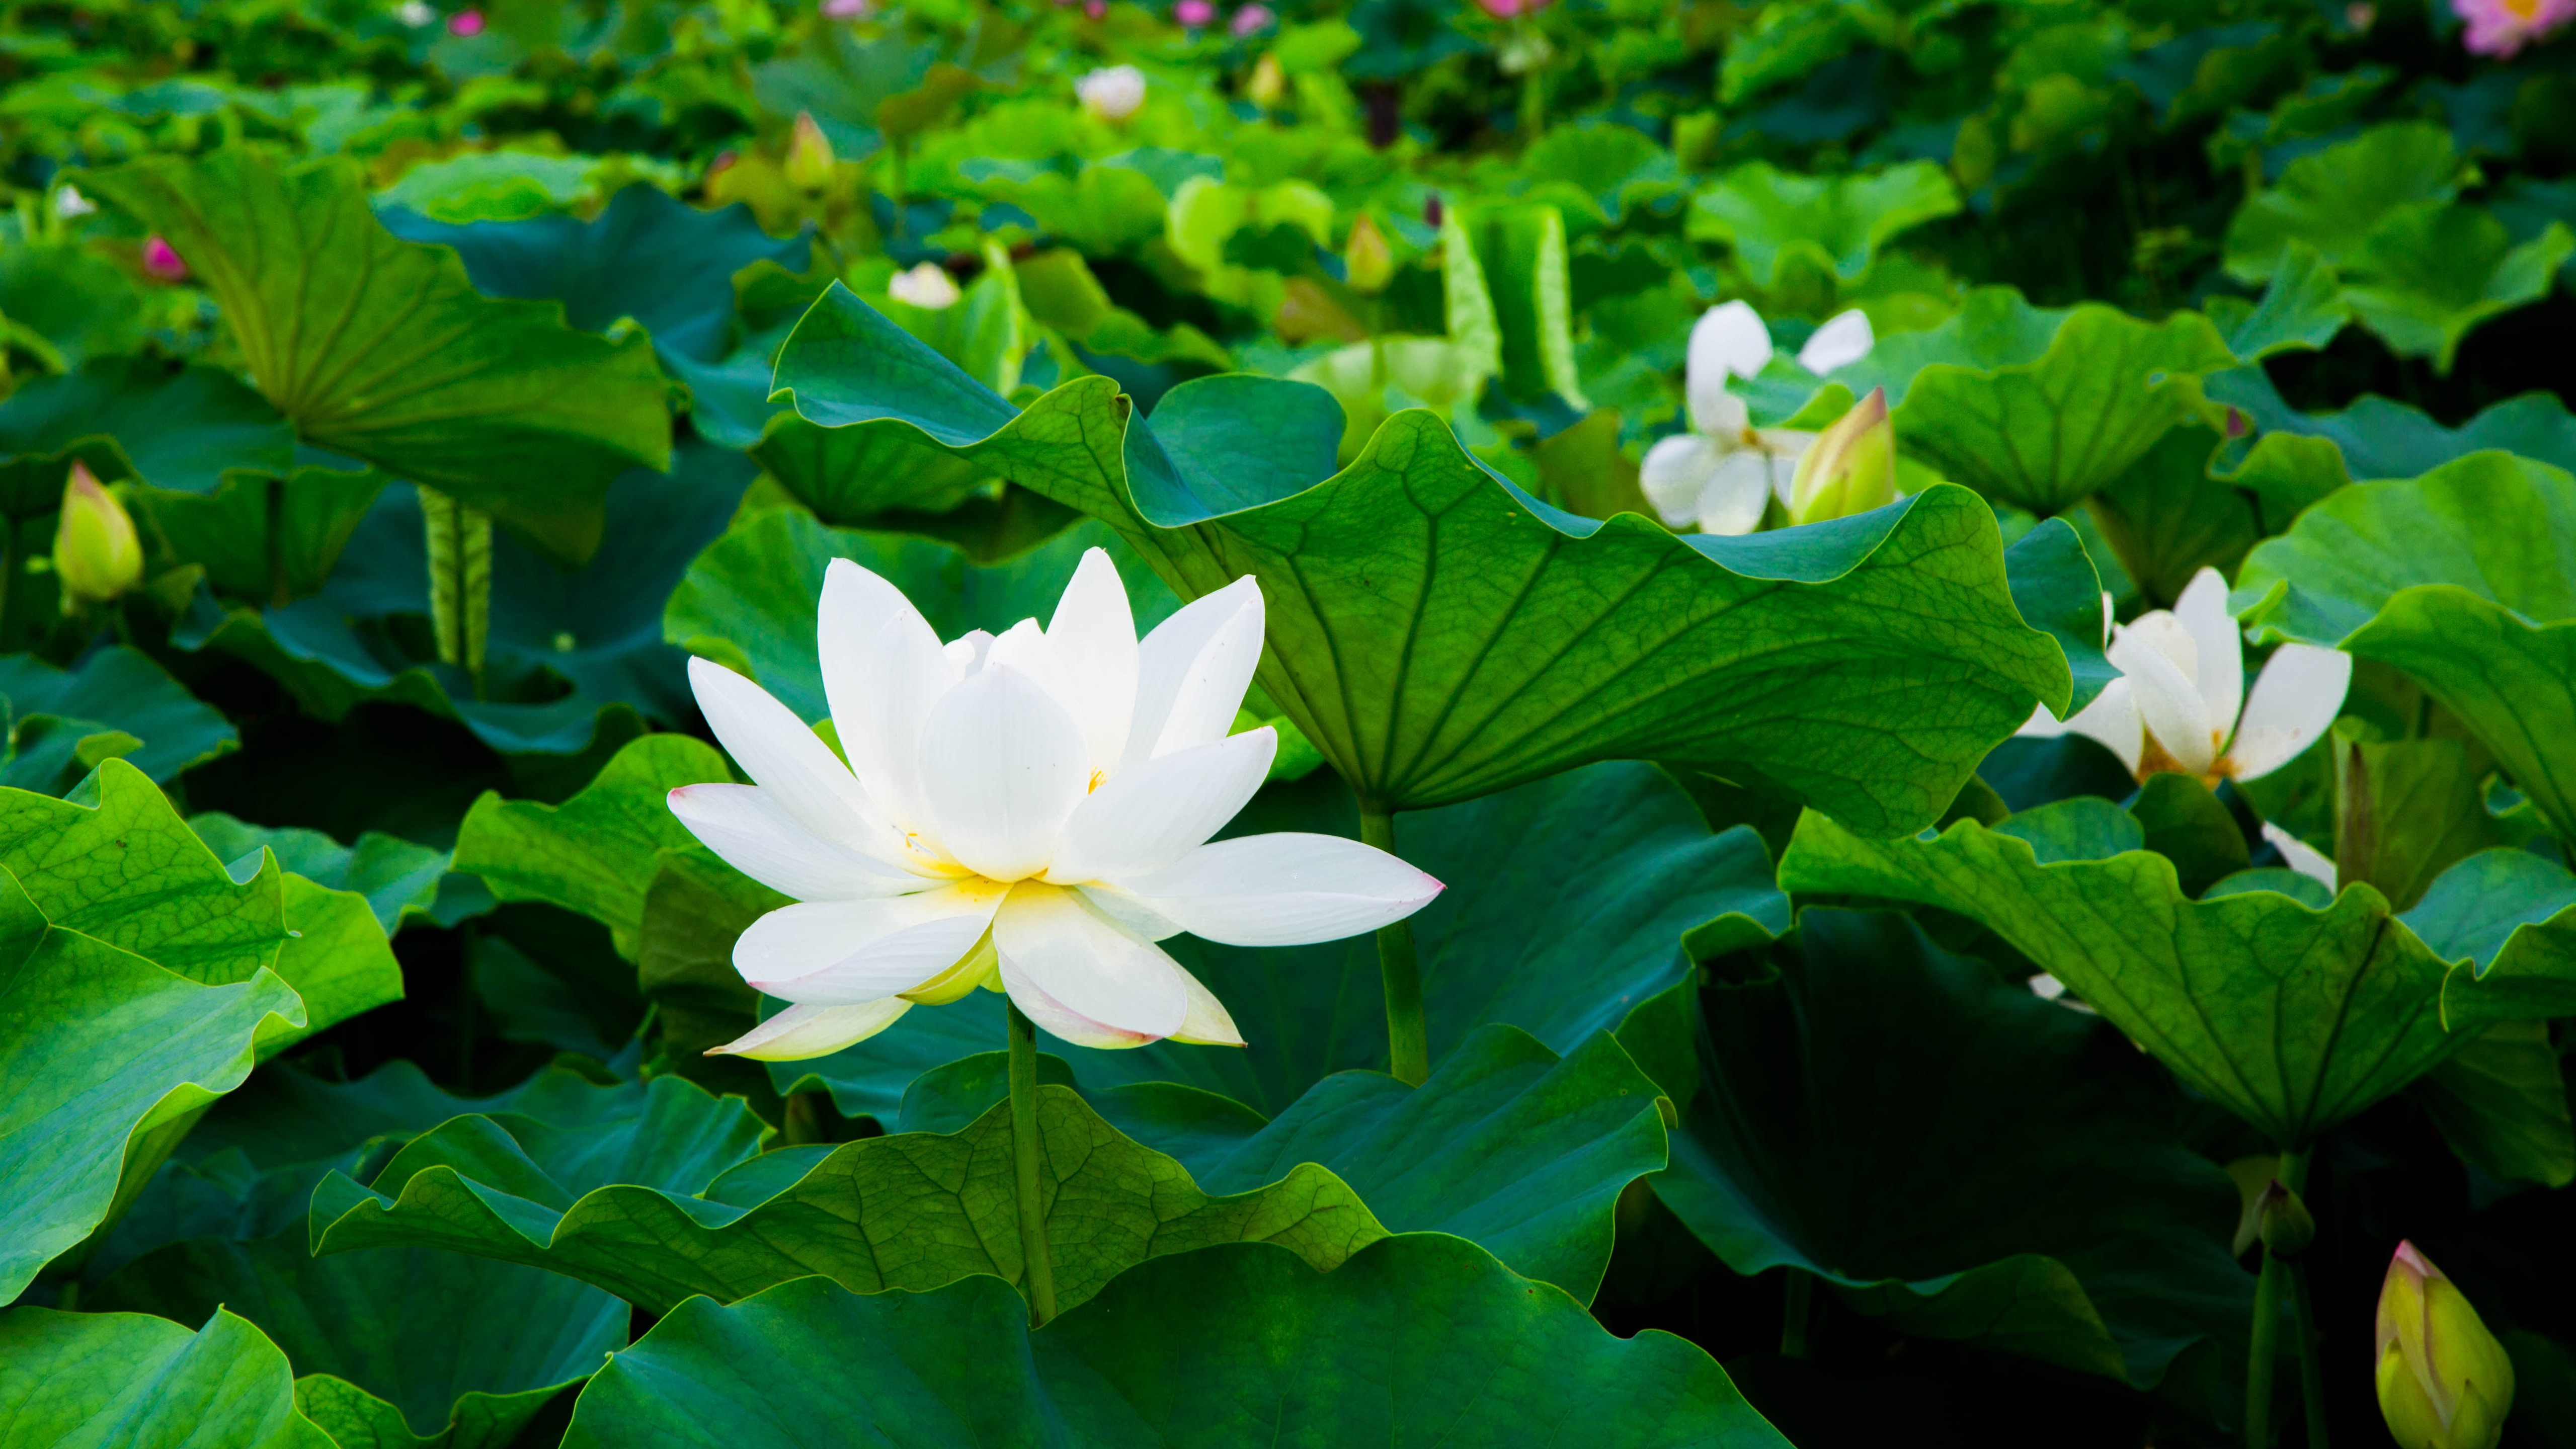 Wallpaper White Lotus Green Leaves Flowers 5120x2880 Uhd 5k